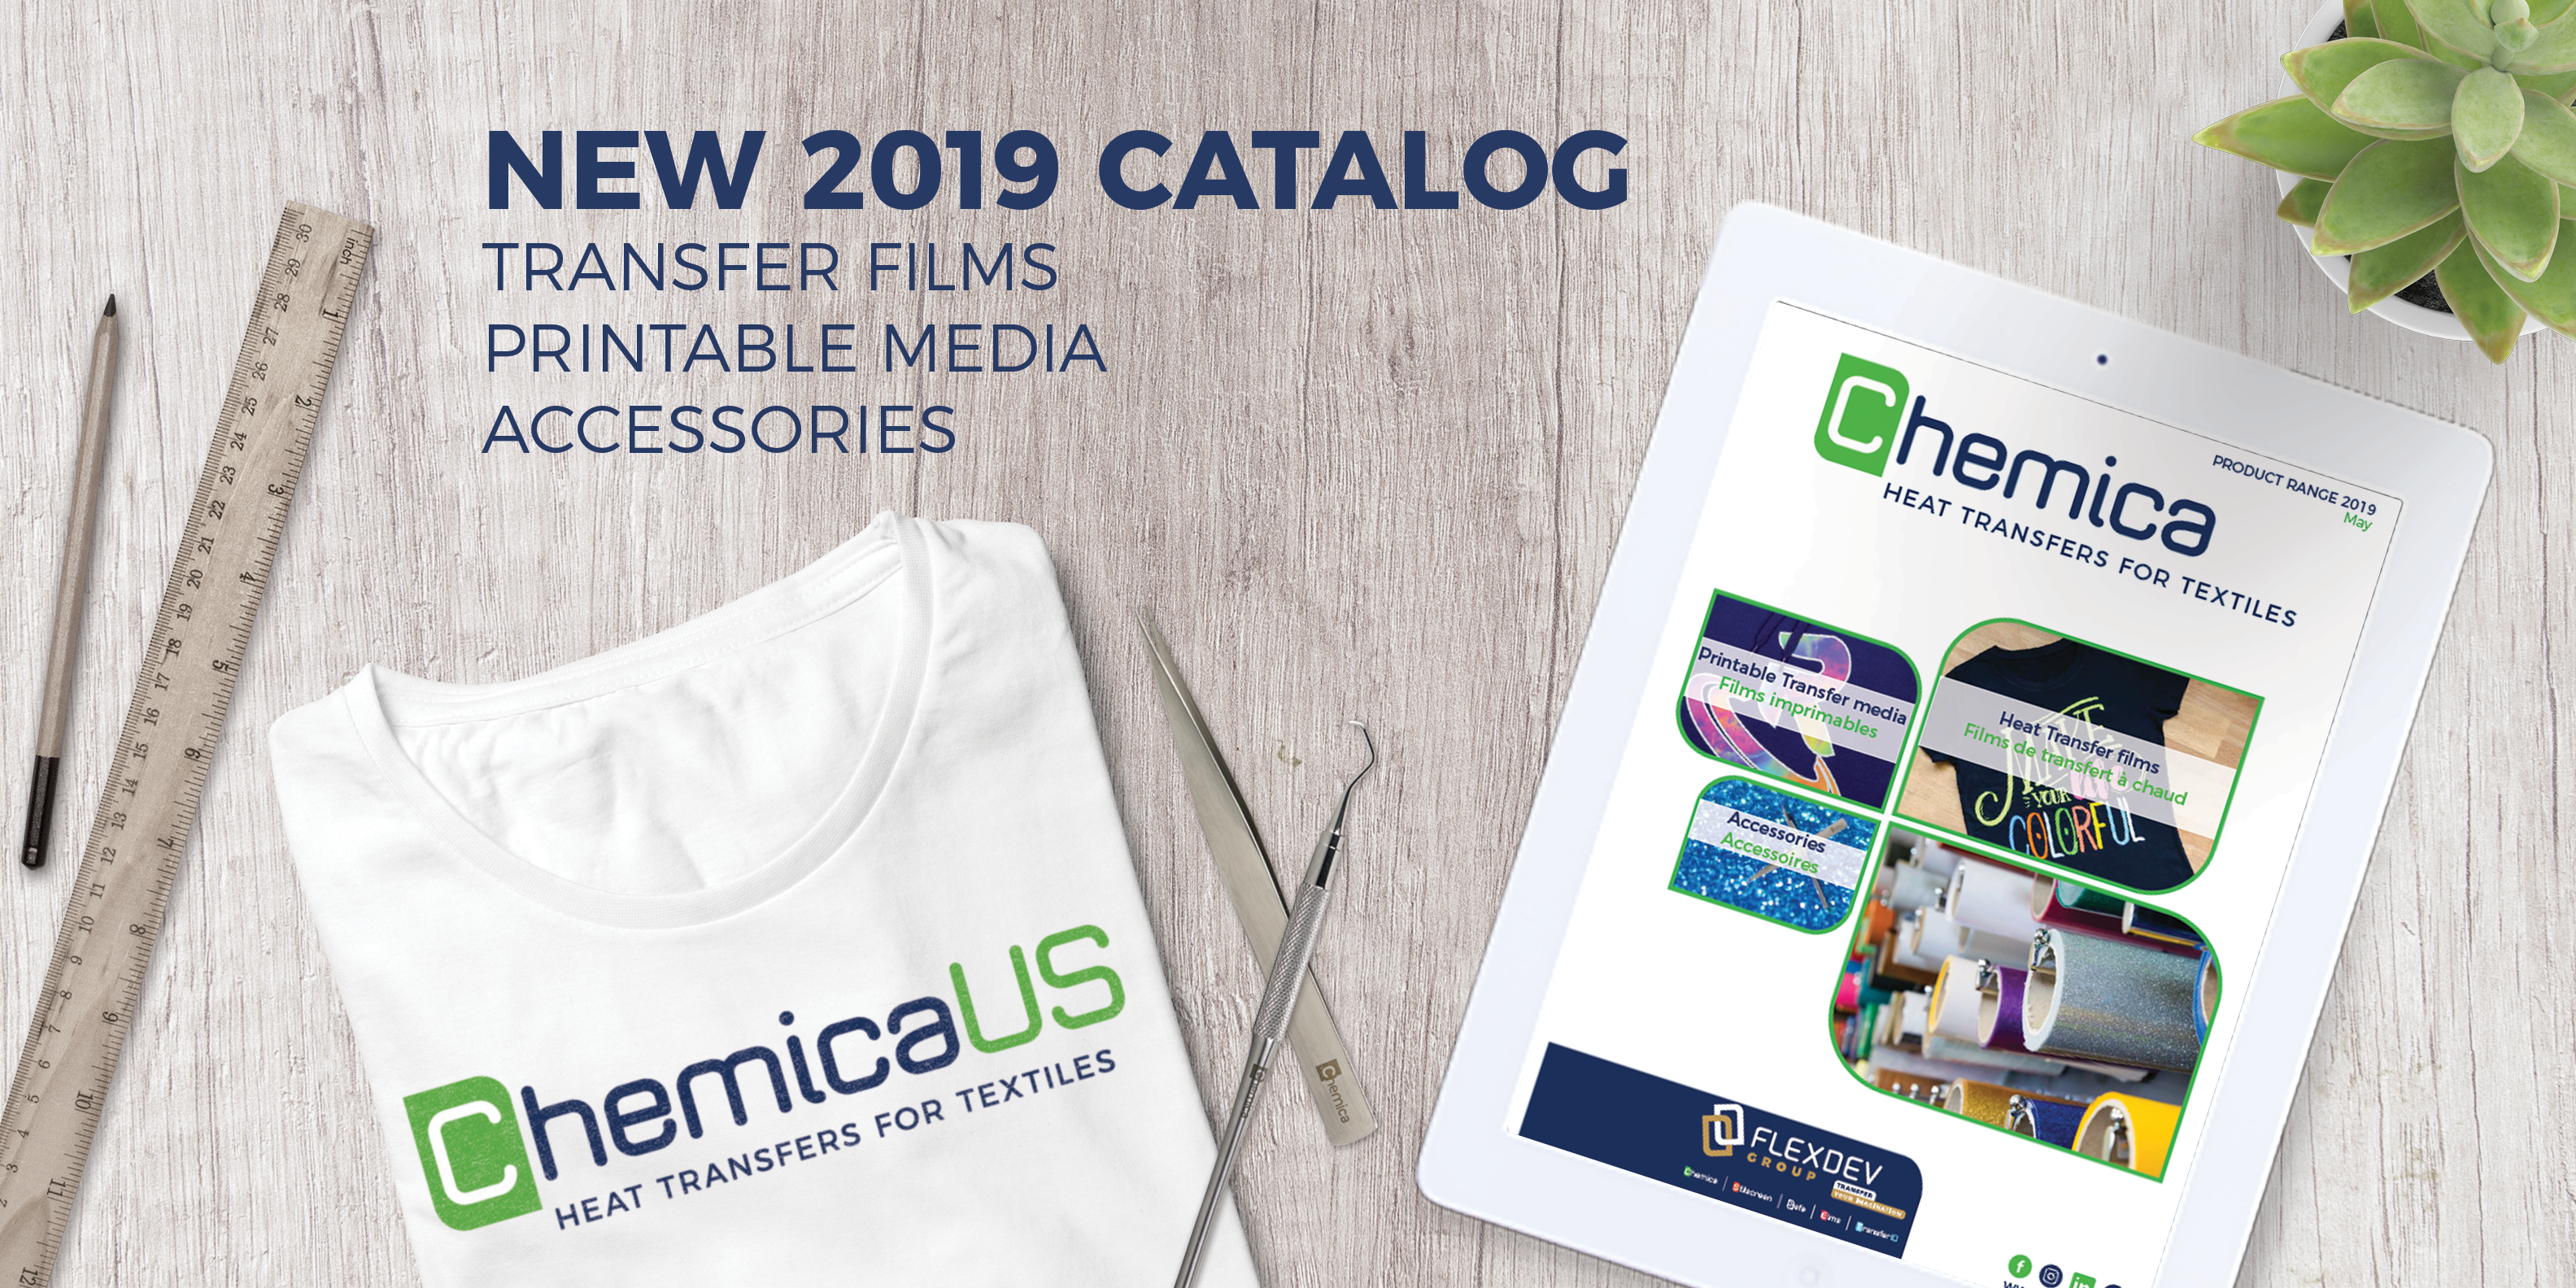 Our all new 2019 Catalog is now available!